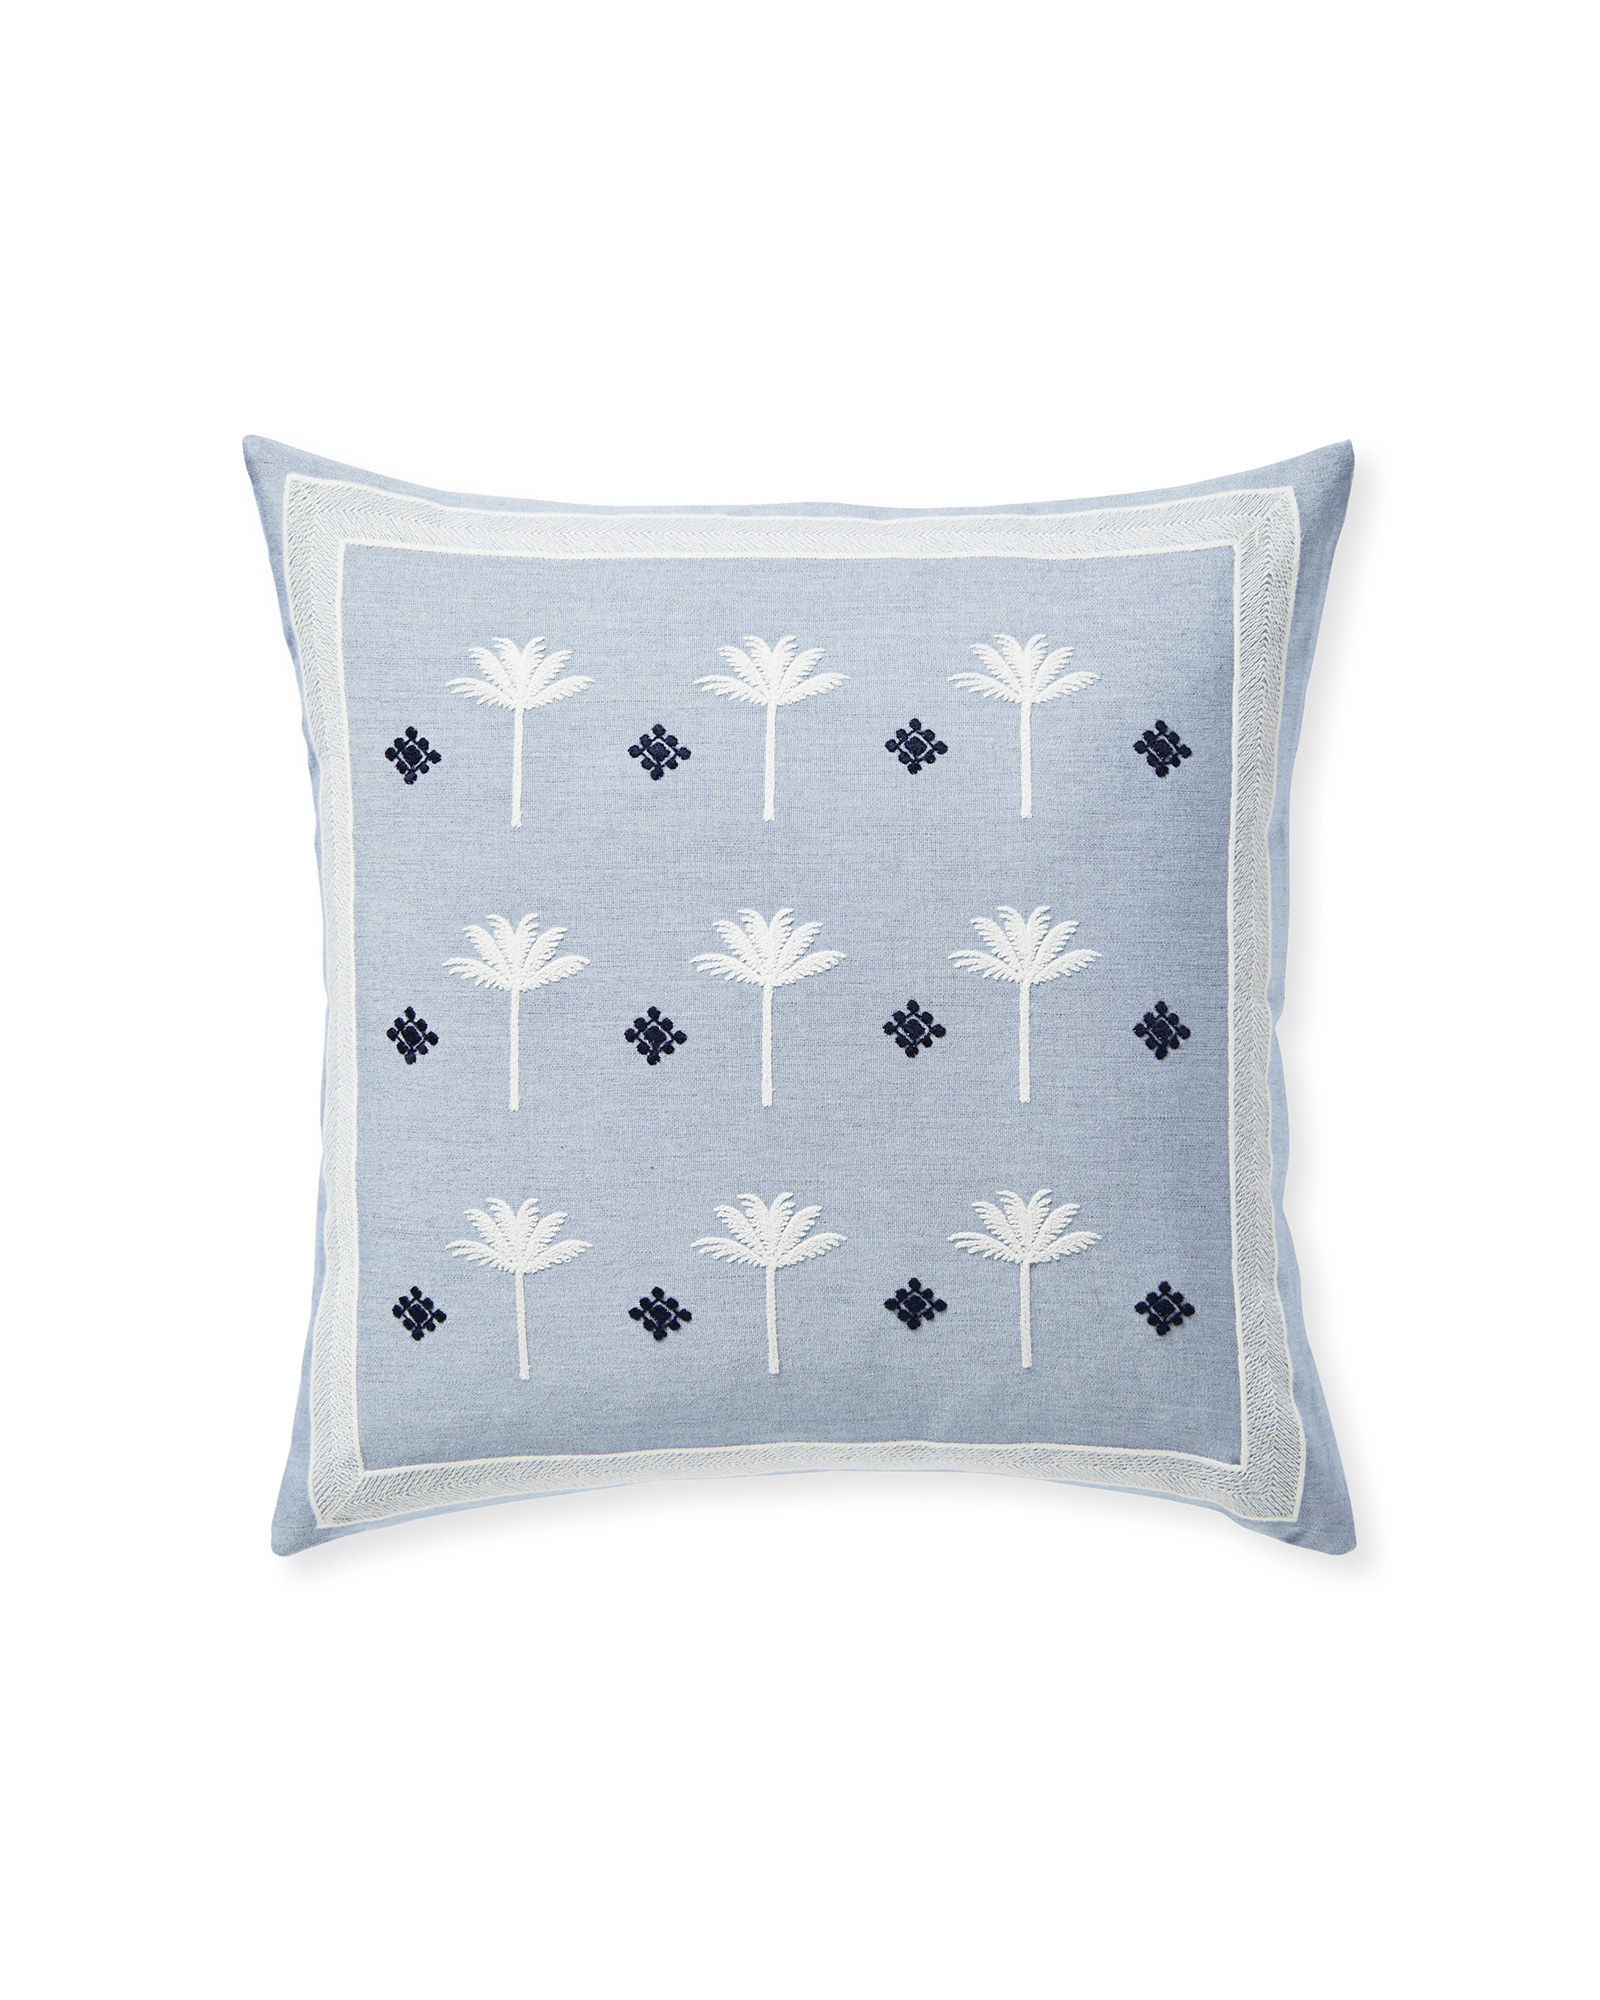 Sunbrella® Veracruz Pillow Cover, Coastal Blue